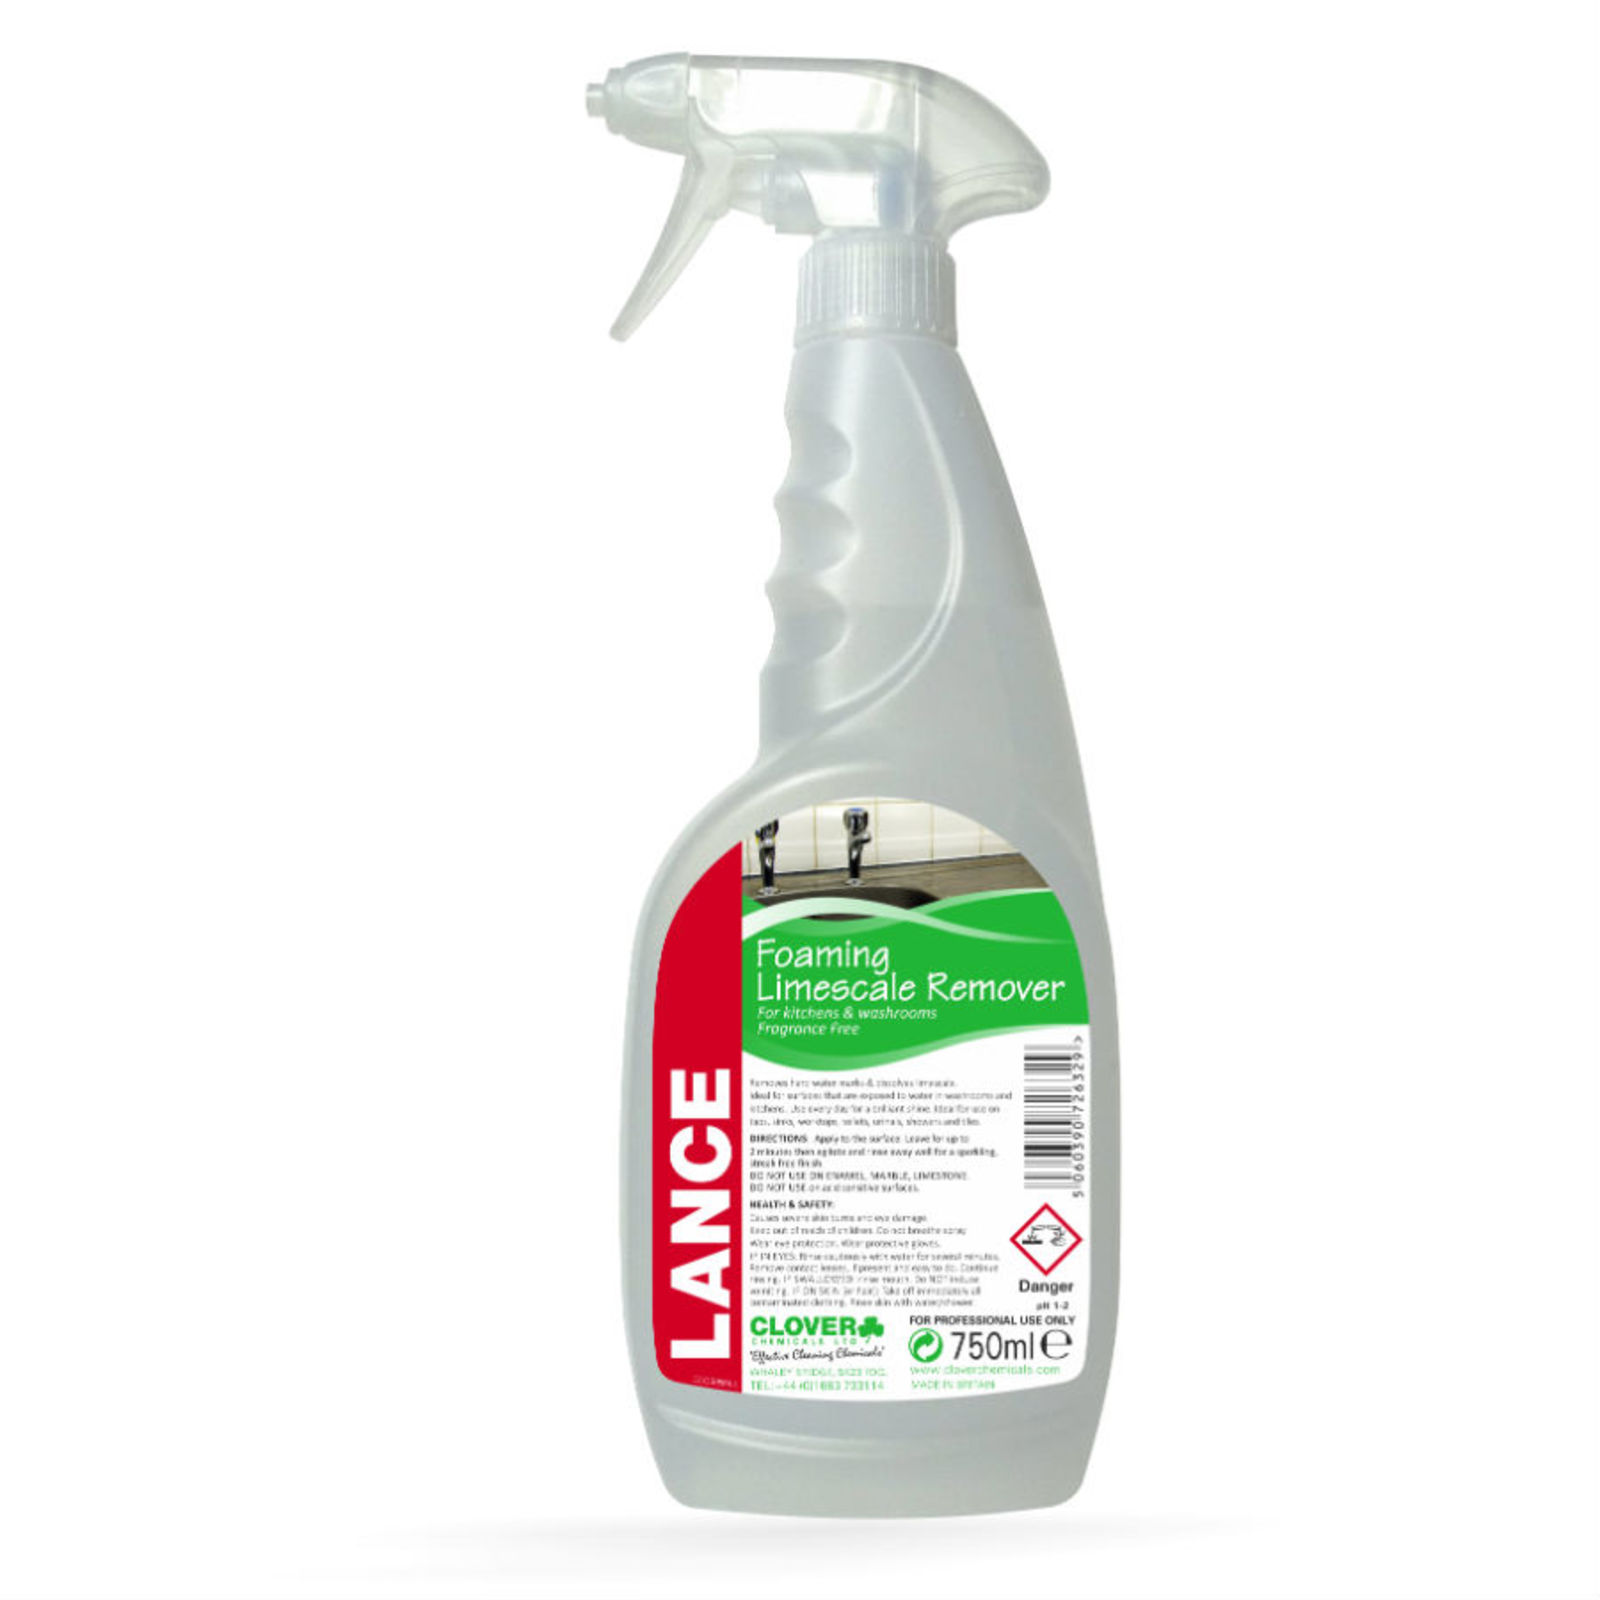 Lance-Concentrated-Foaming-Limescale-Remover-Spray-750ml--single-